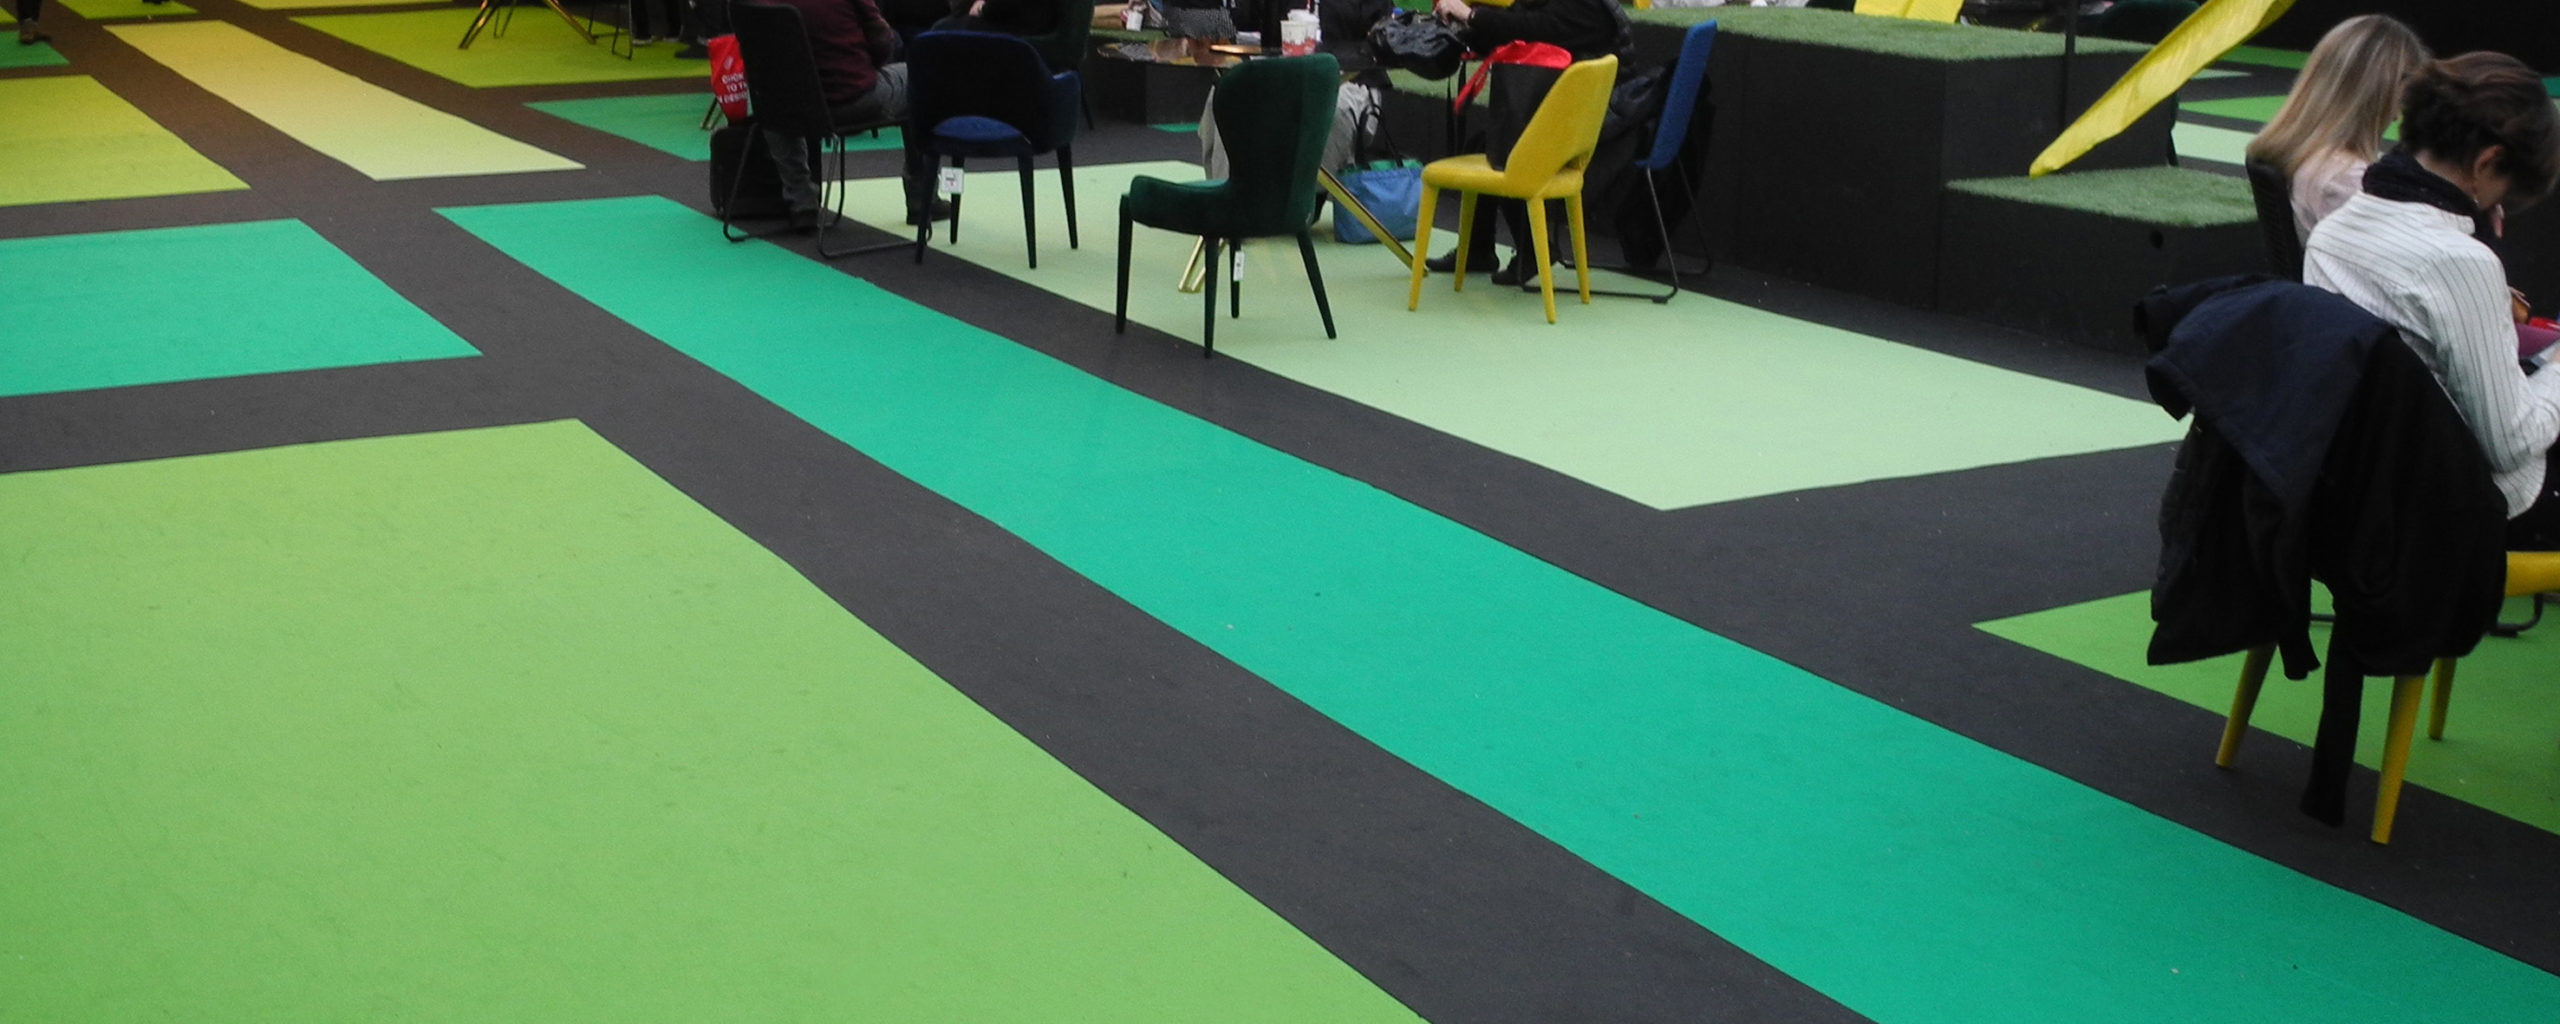 sommer-event-carpet-expostyle-expocolor-mid-green-black-apple-green-pistachio